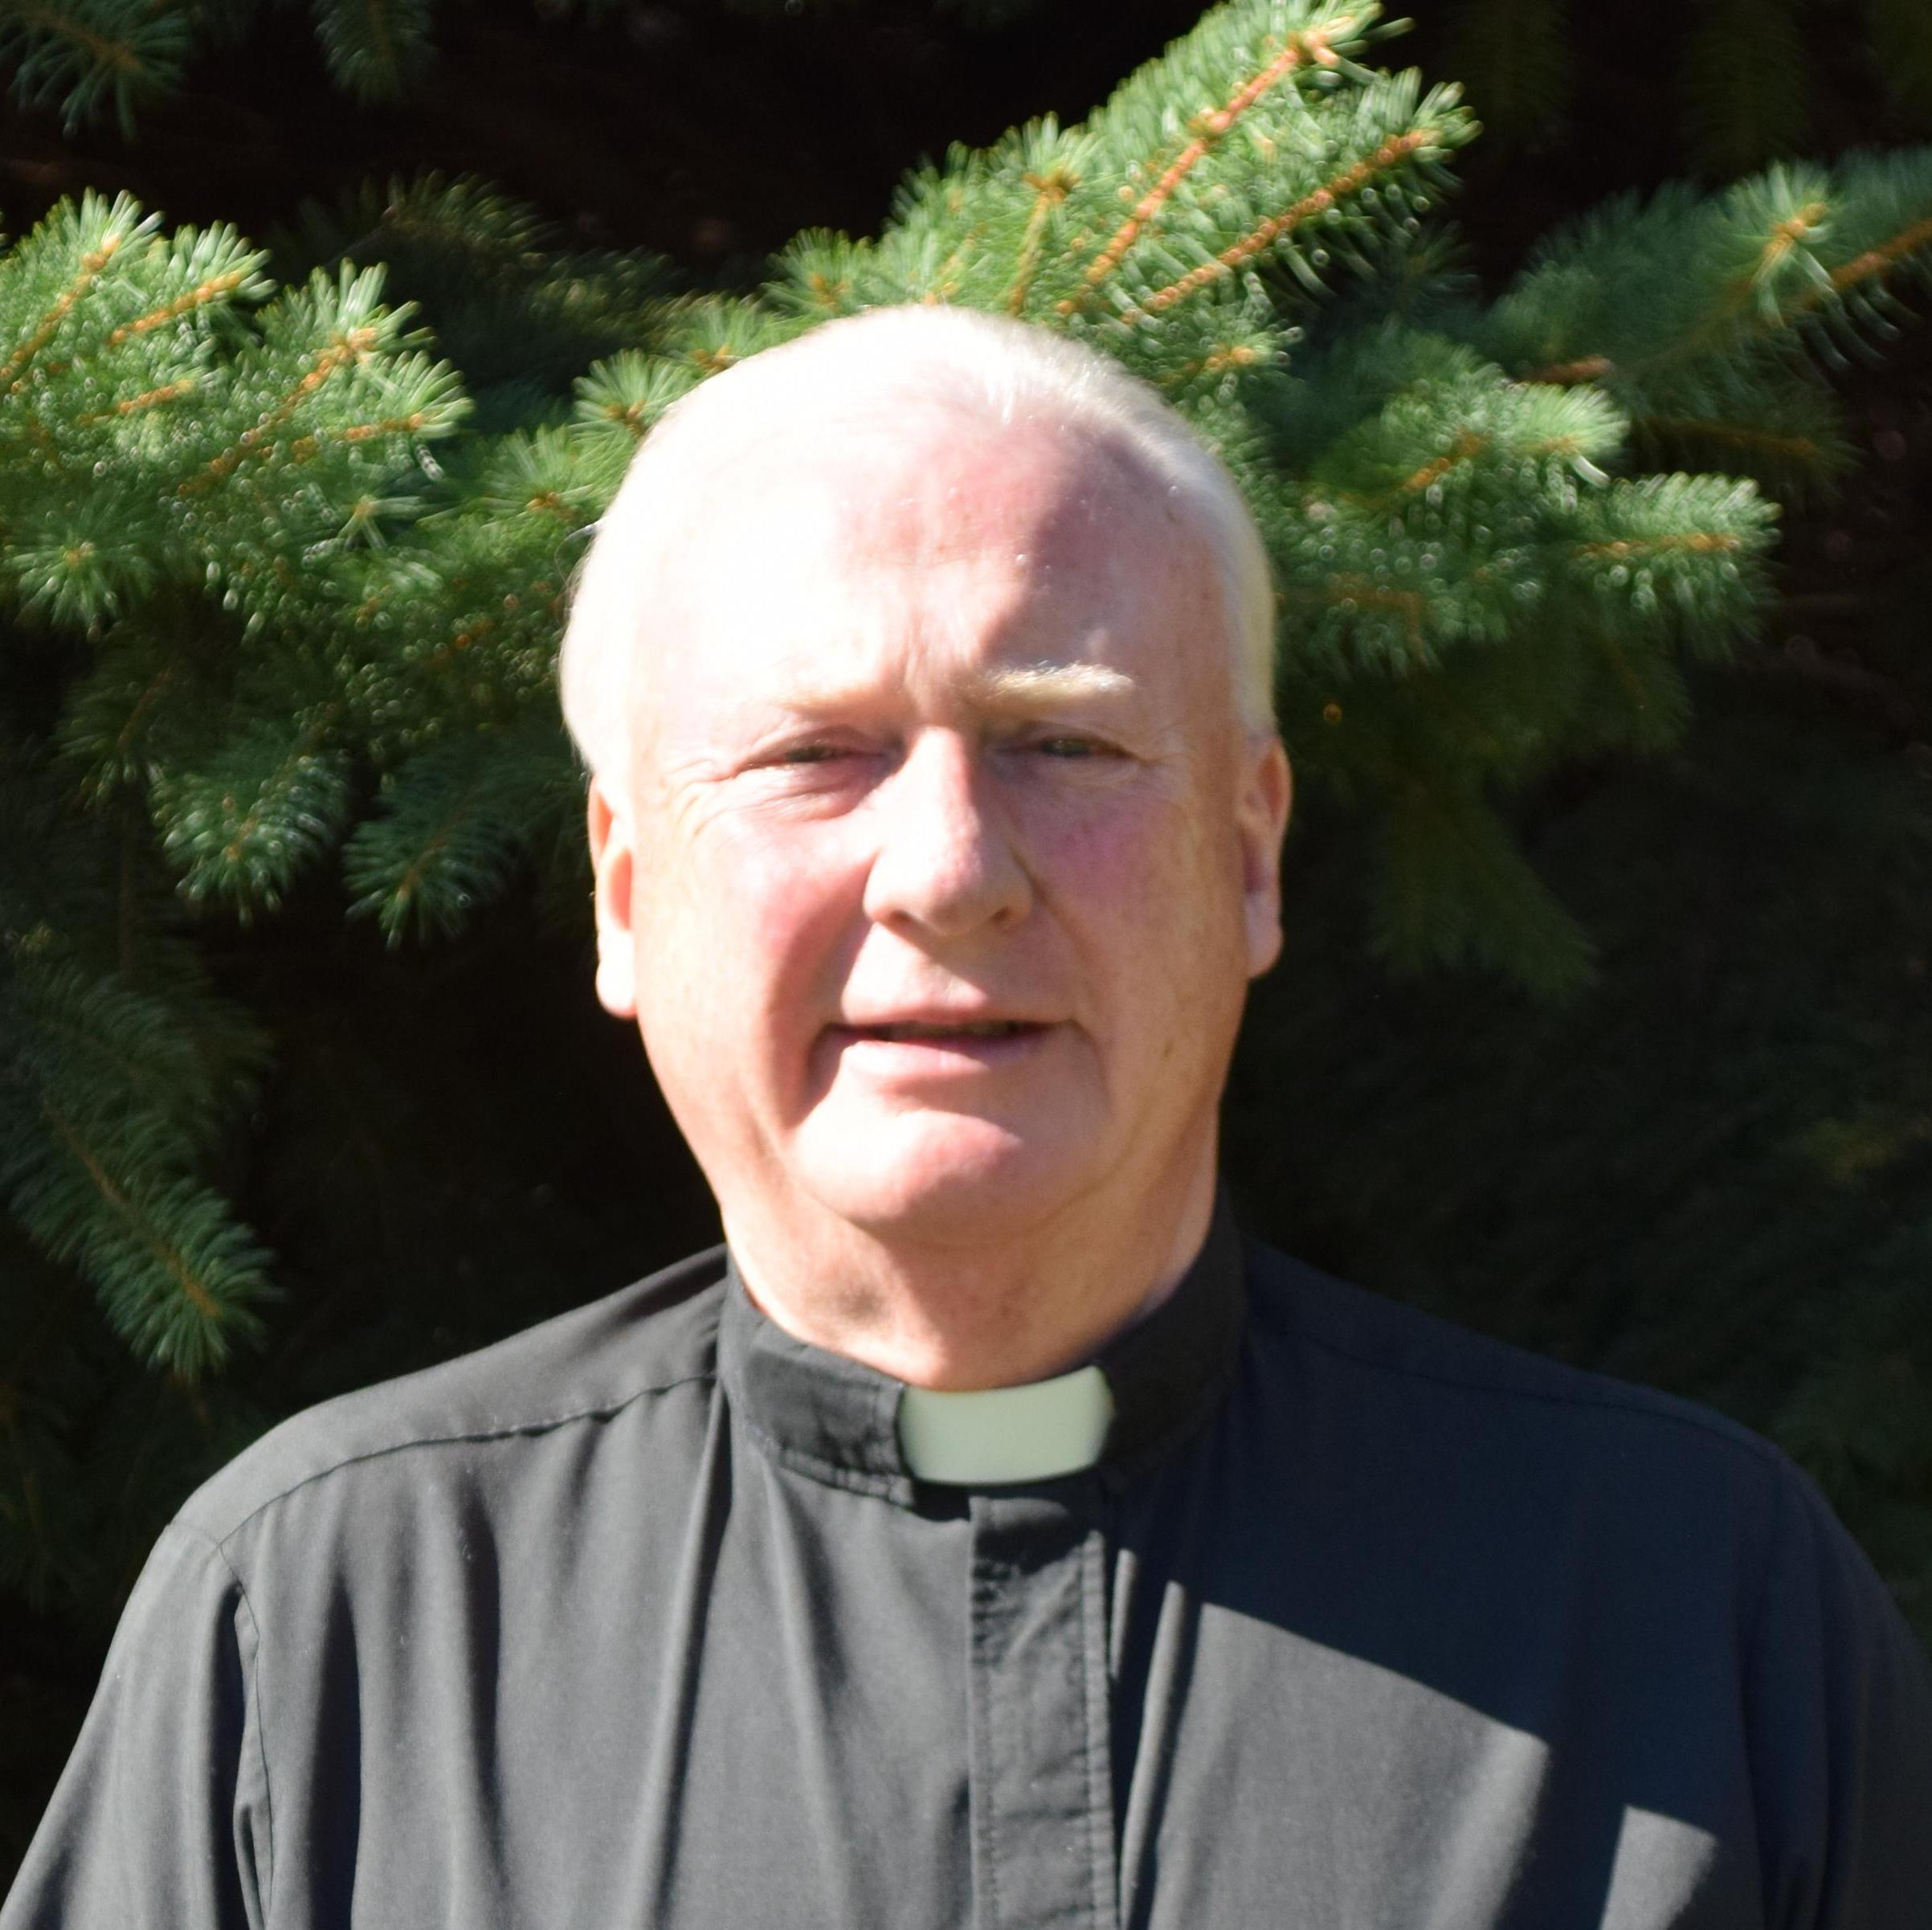 Msgr. William Tindall's Profile Photo